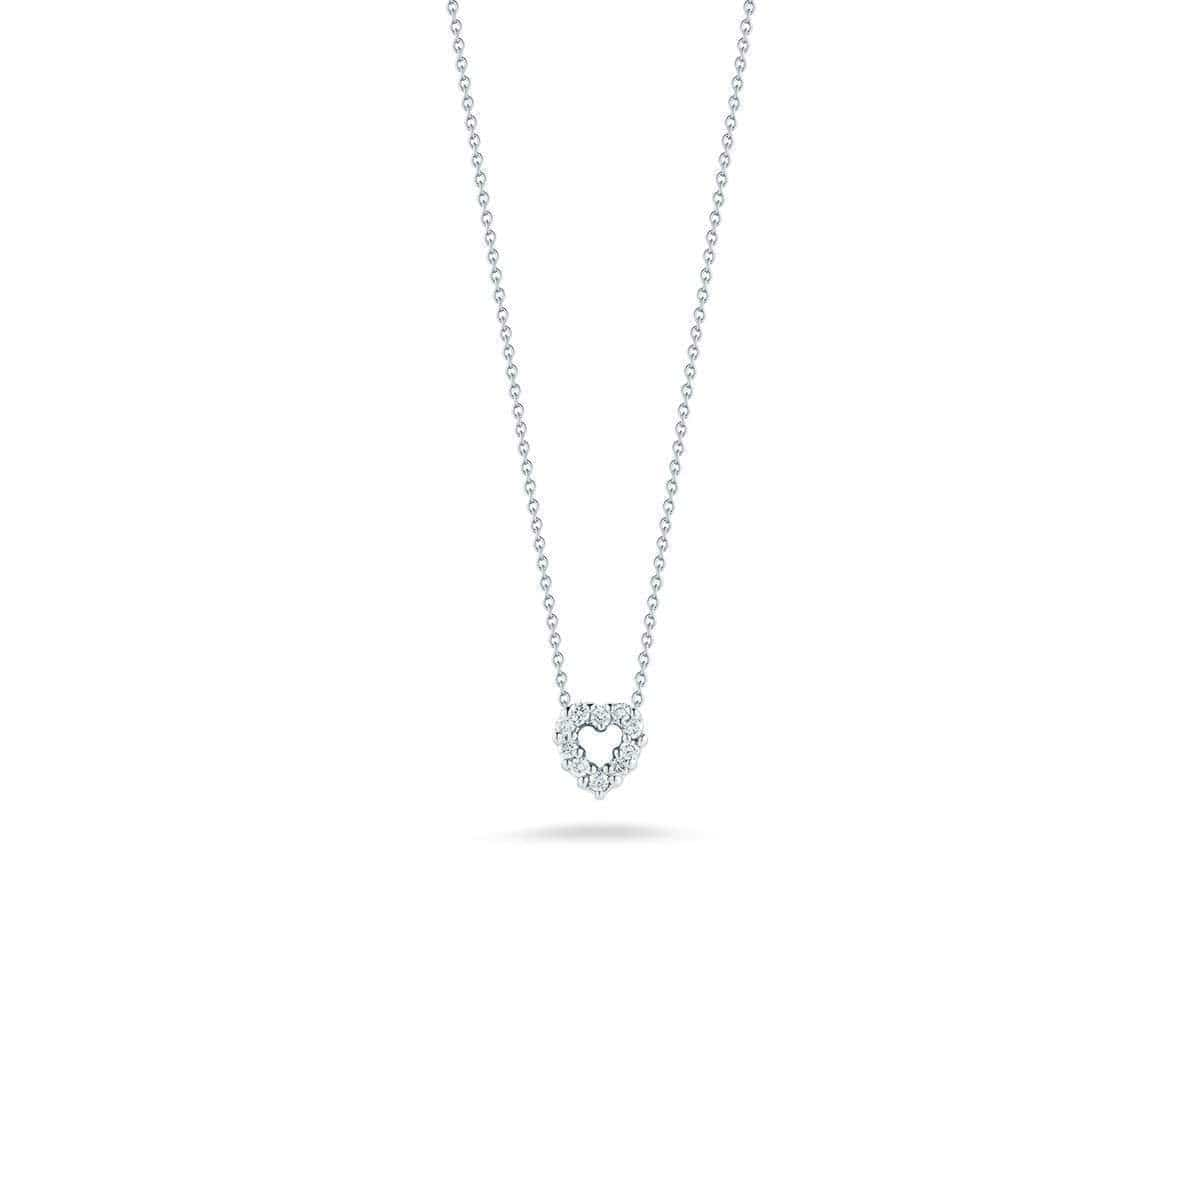 18k White Gold & Diamond Baby Heart Necklace - 001616AWCHX0-Roberto Coin-Renee Taylor Gallery